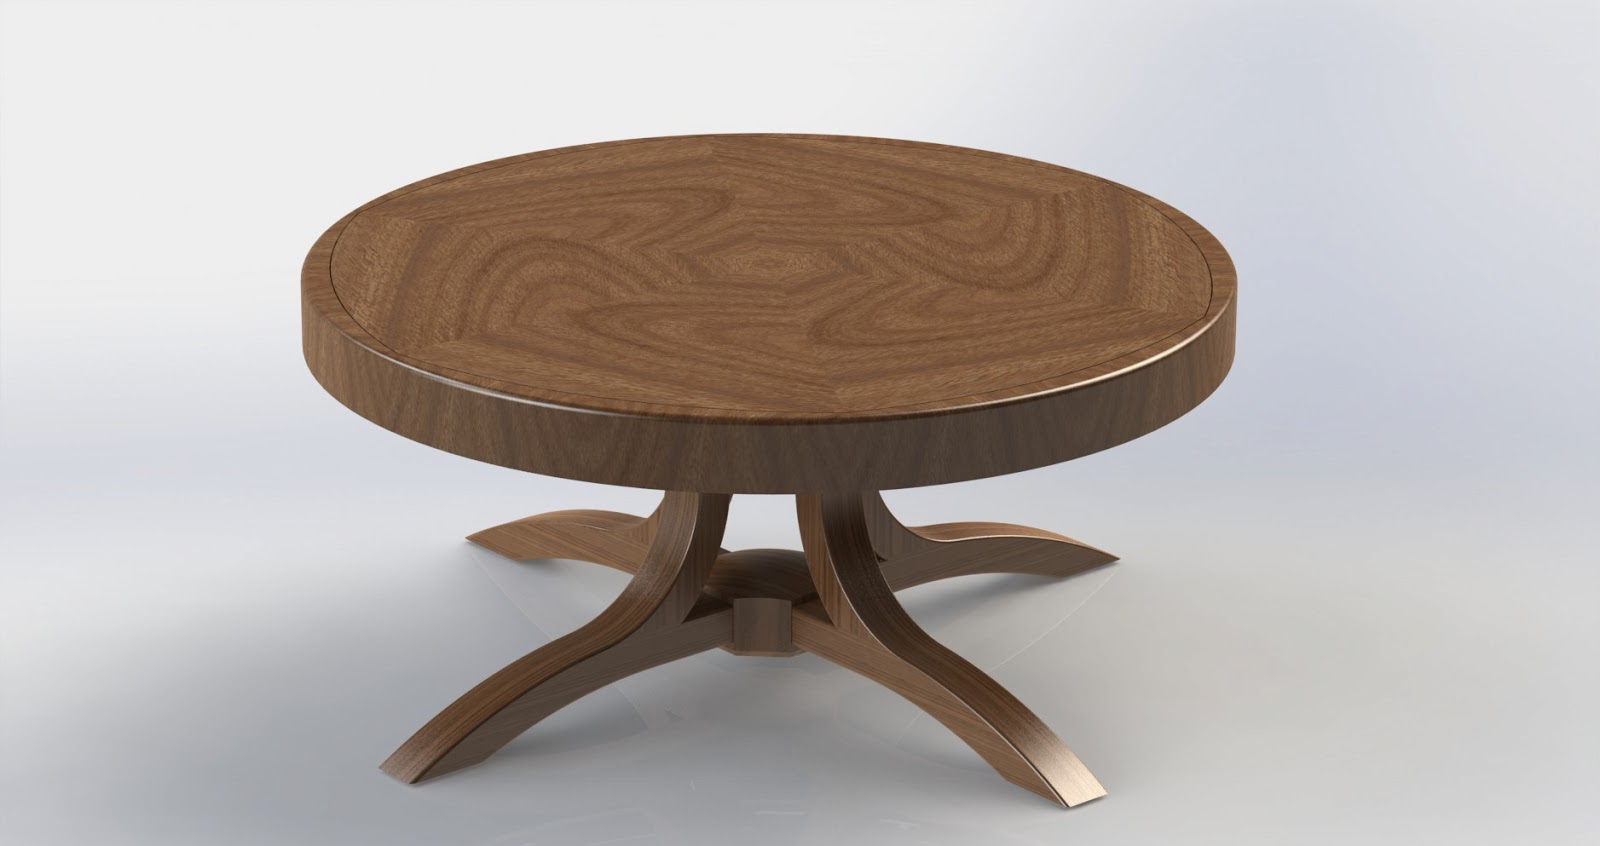 New West Design Expanding Dining Table